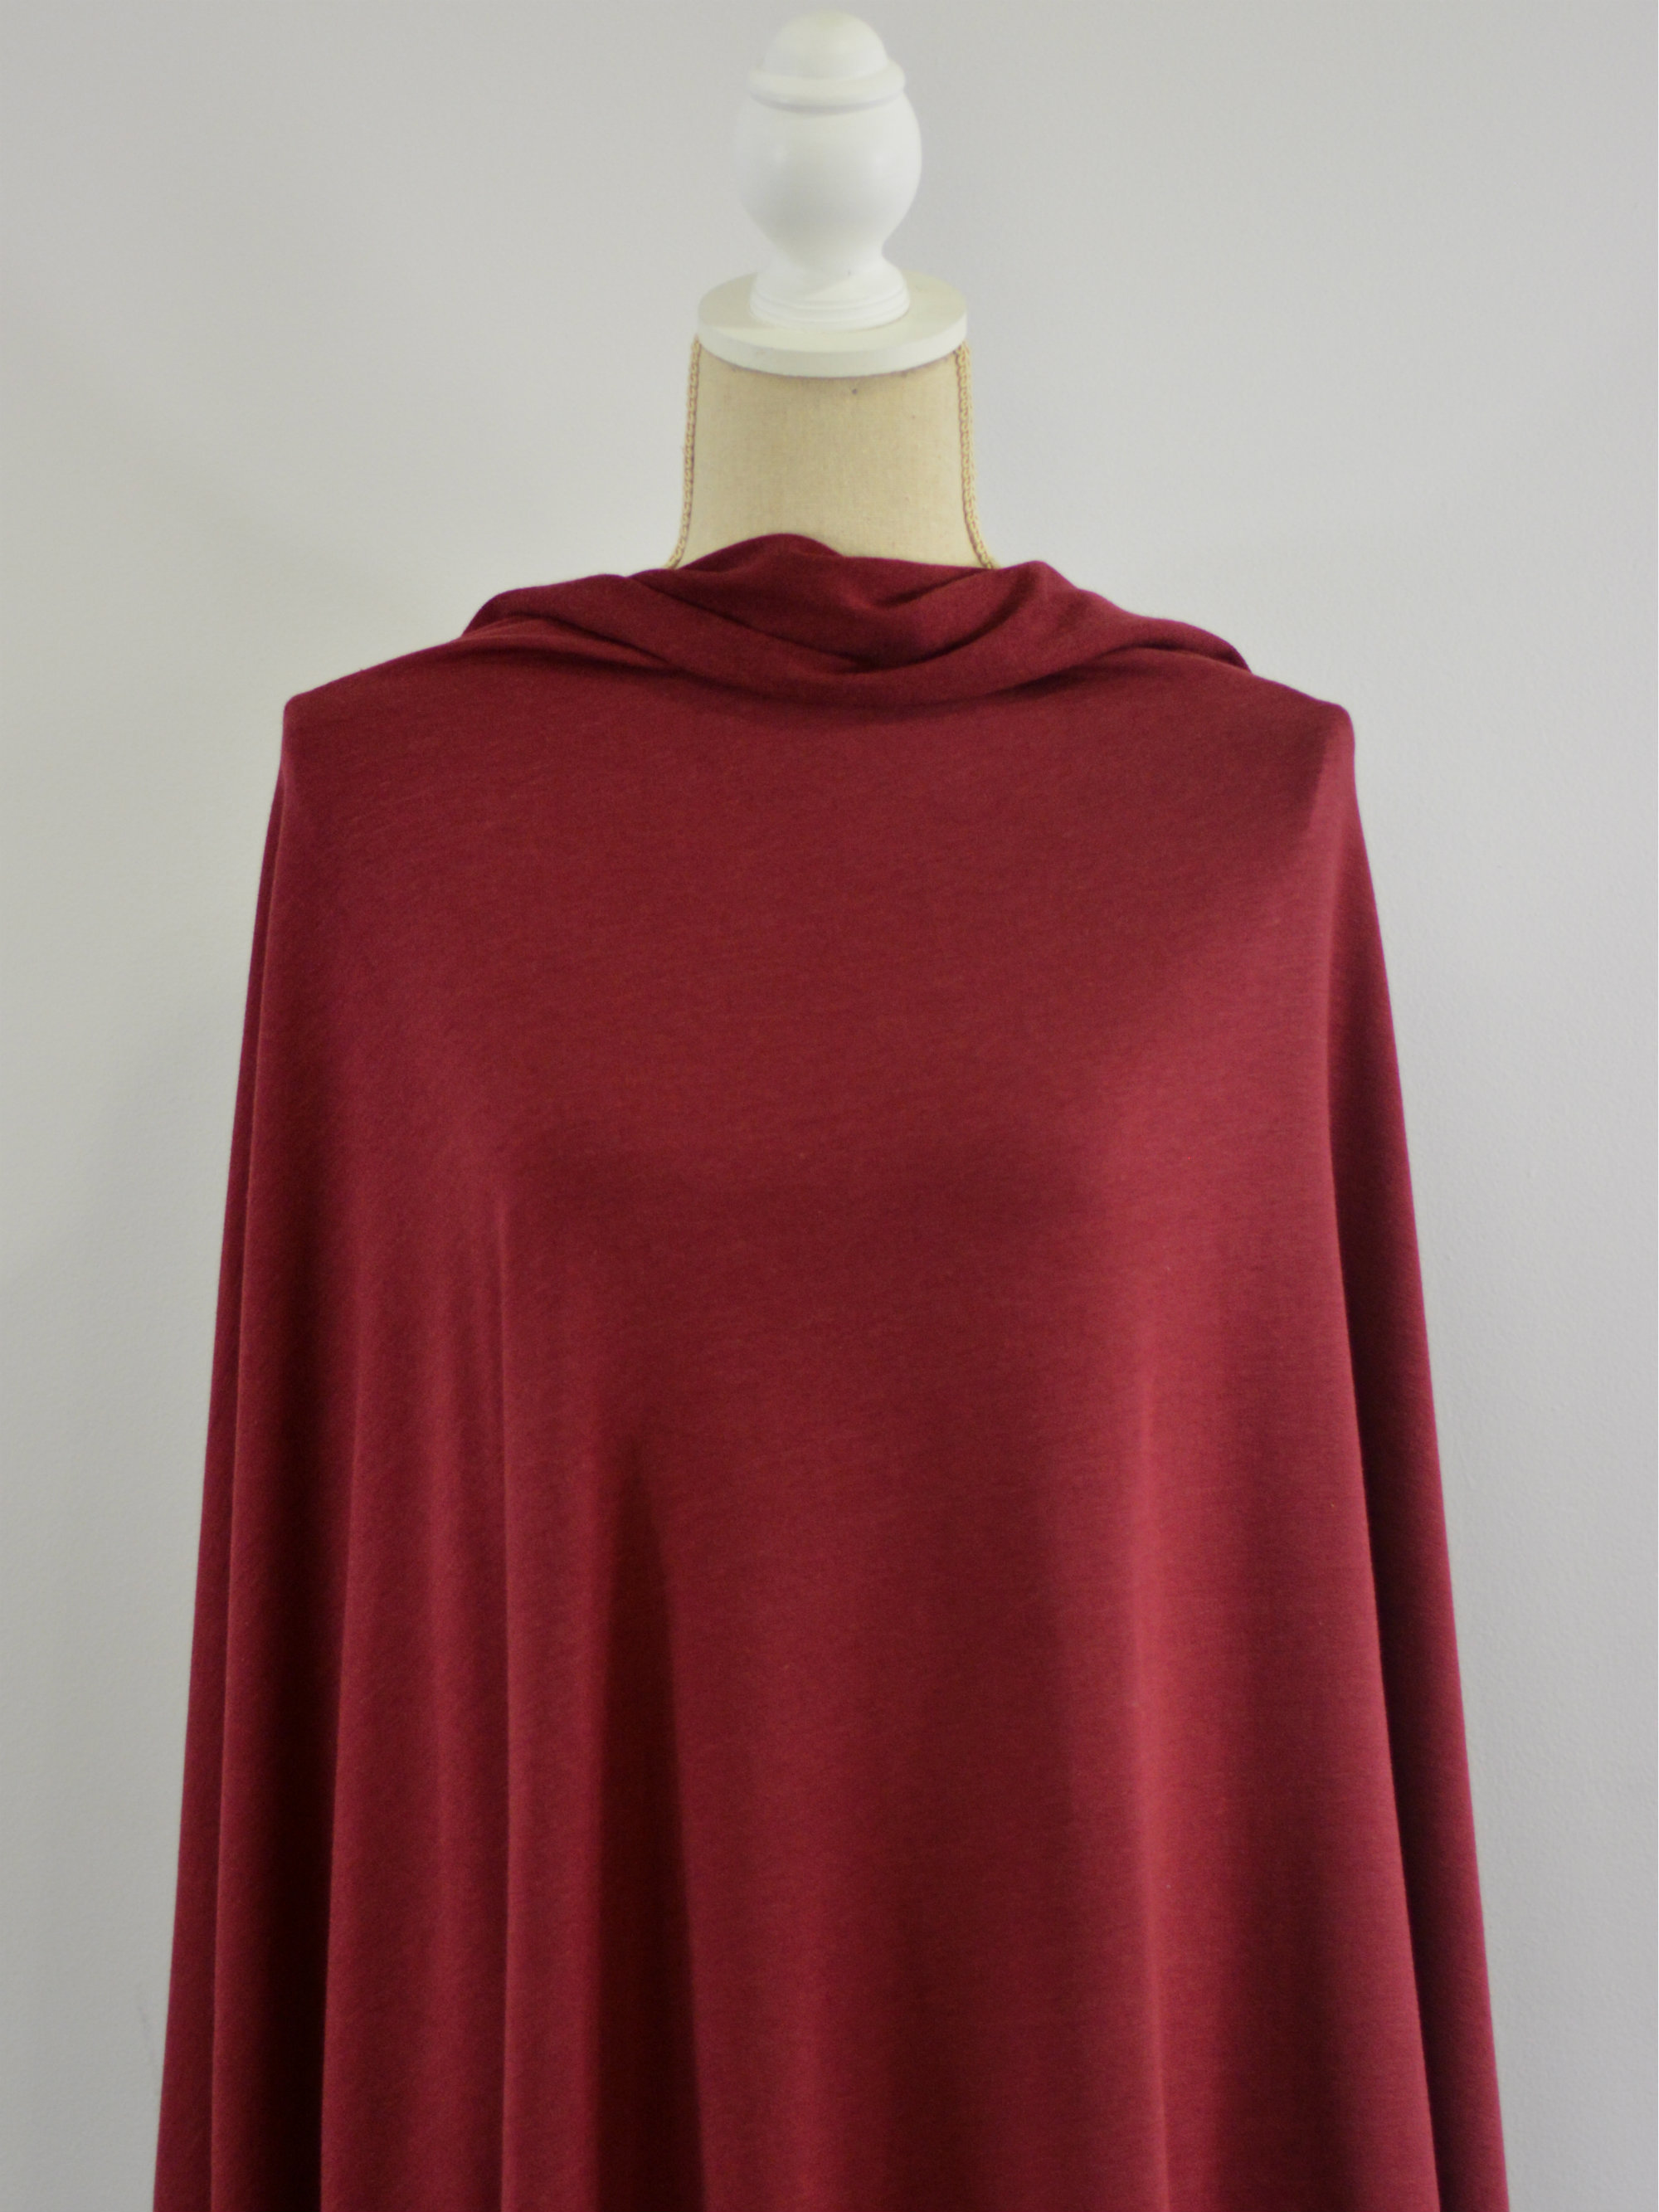 Bamboo Stretch French Terry, Burgundy - 1/2 meter